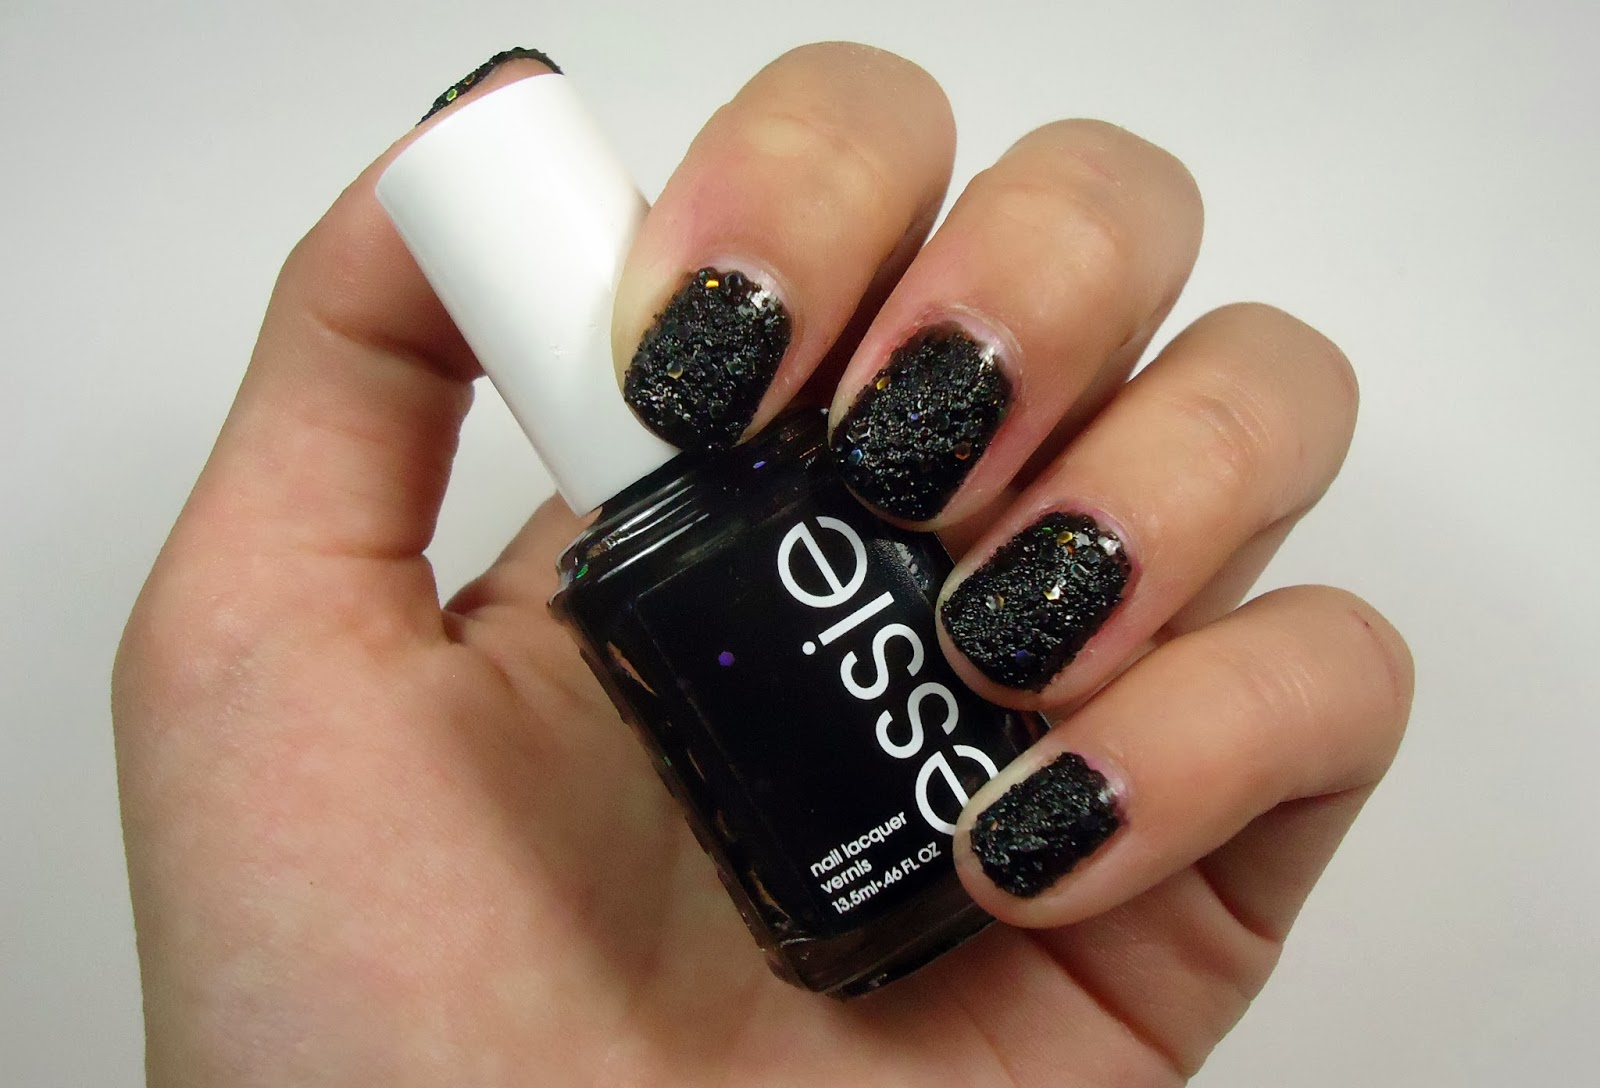 Beauty Kitten: Essie Nail Lacquer in Belugaria Review & Swatch